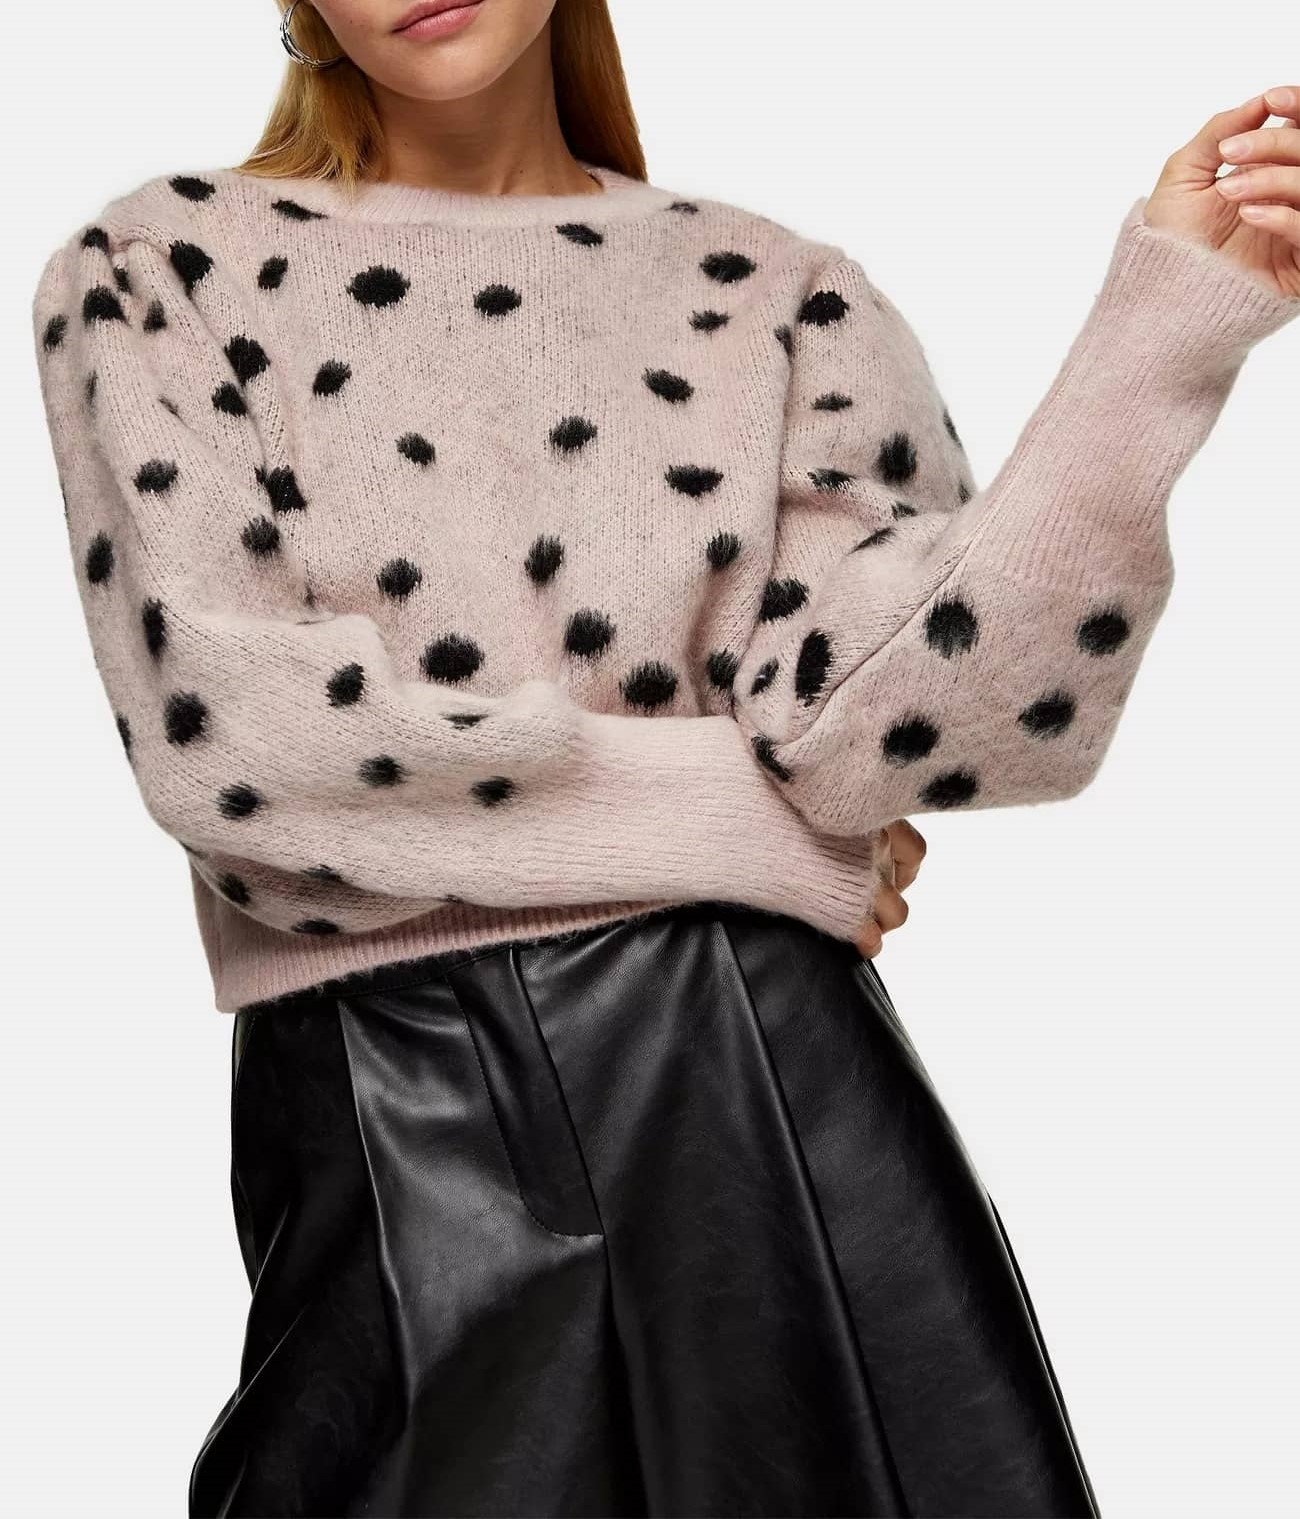 pink and black spot knitted sweater